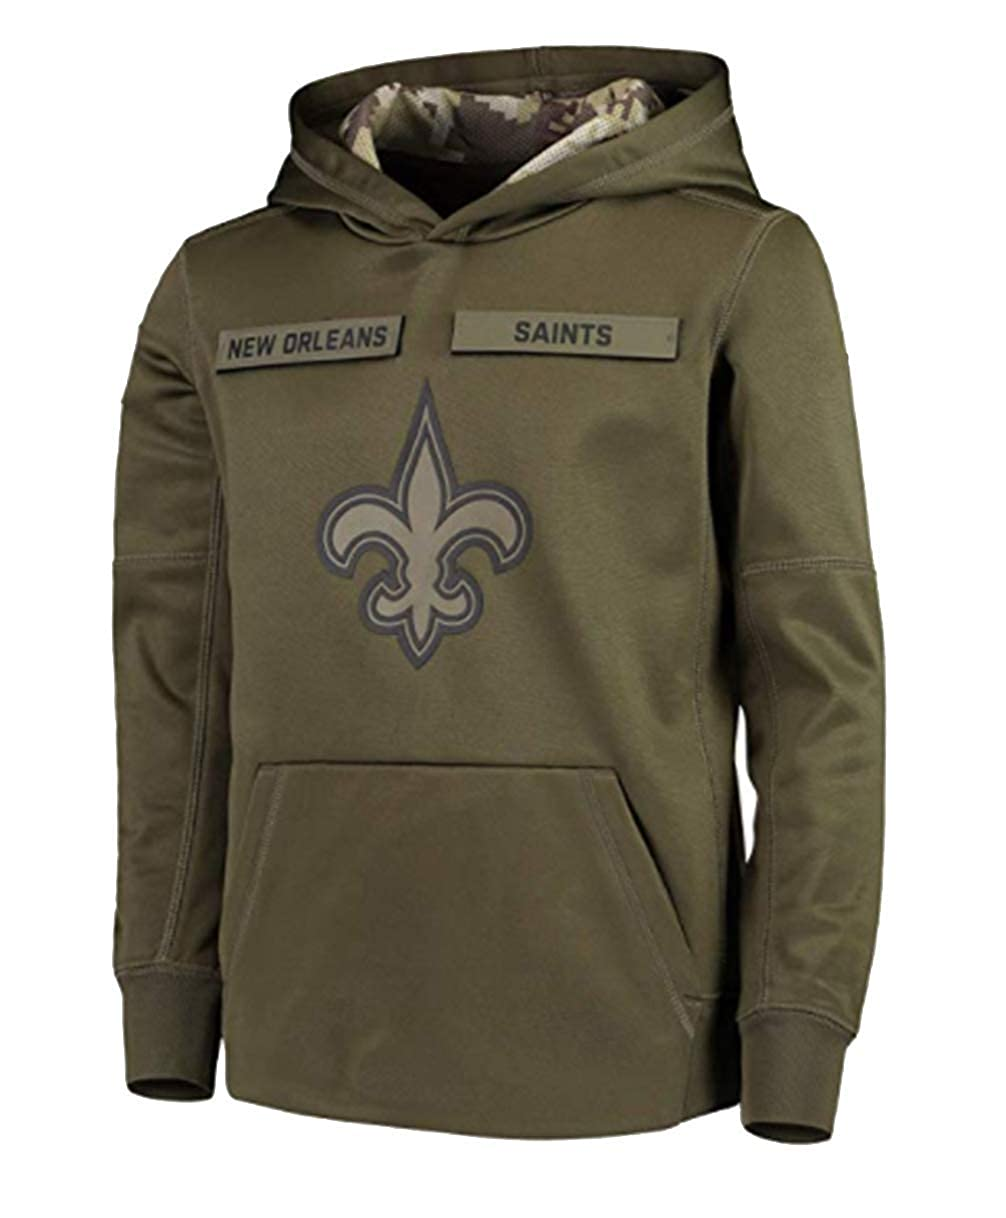 finest selection 59a2d 9ebf9 Amazon.com: Beverly Wray New Orleans Saints Apparel Salute ...